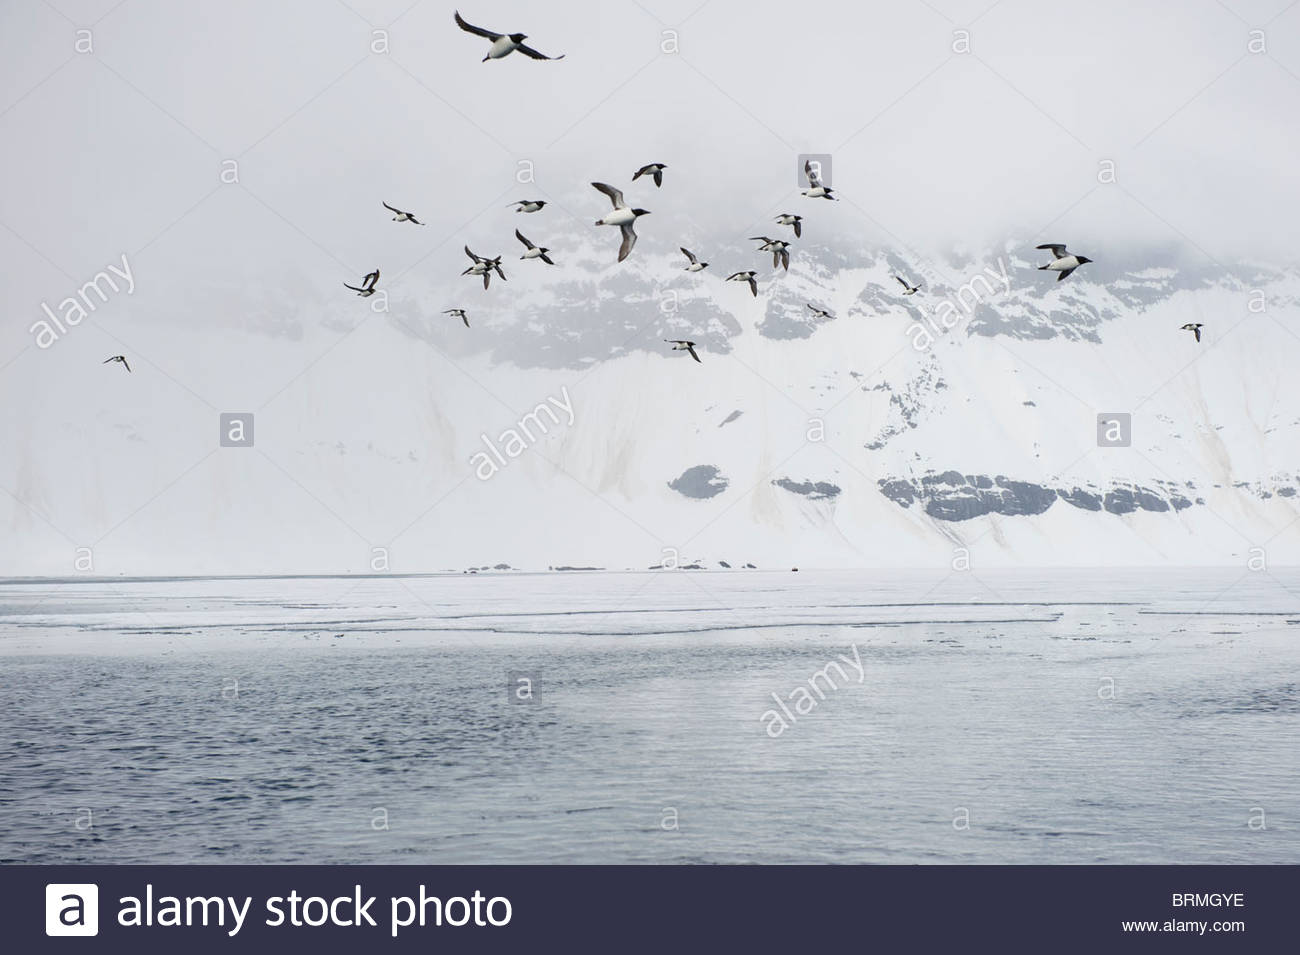 Common Guillemots (Uria aalge) fly in foggy Hornsund Stock Photo